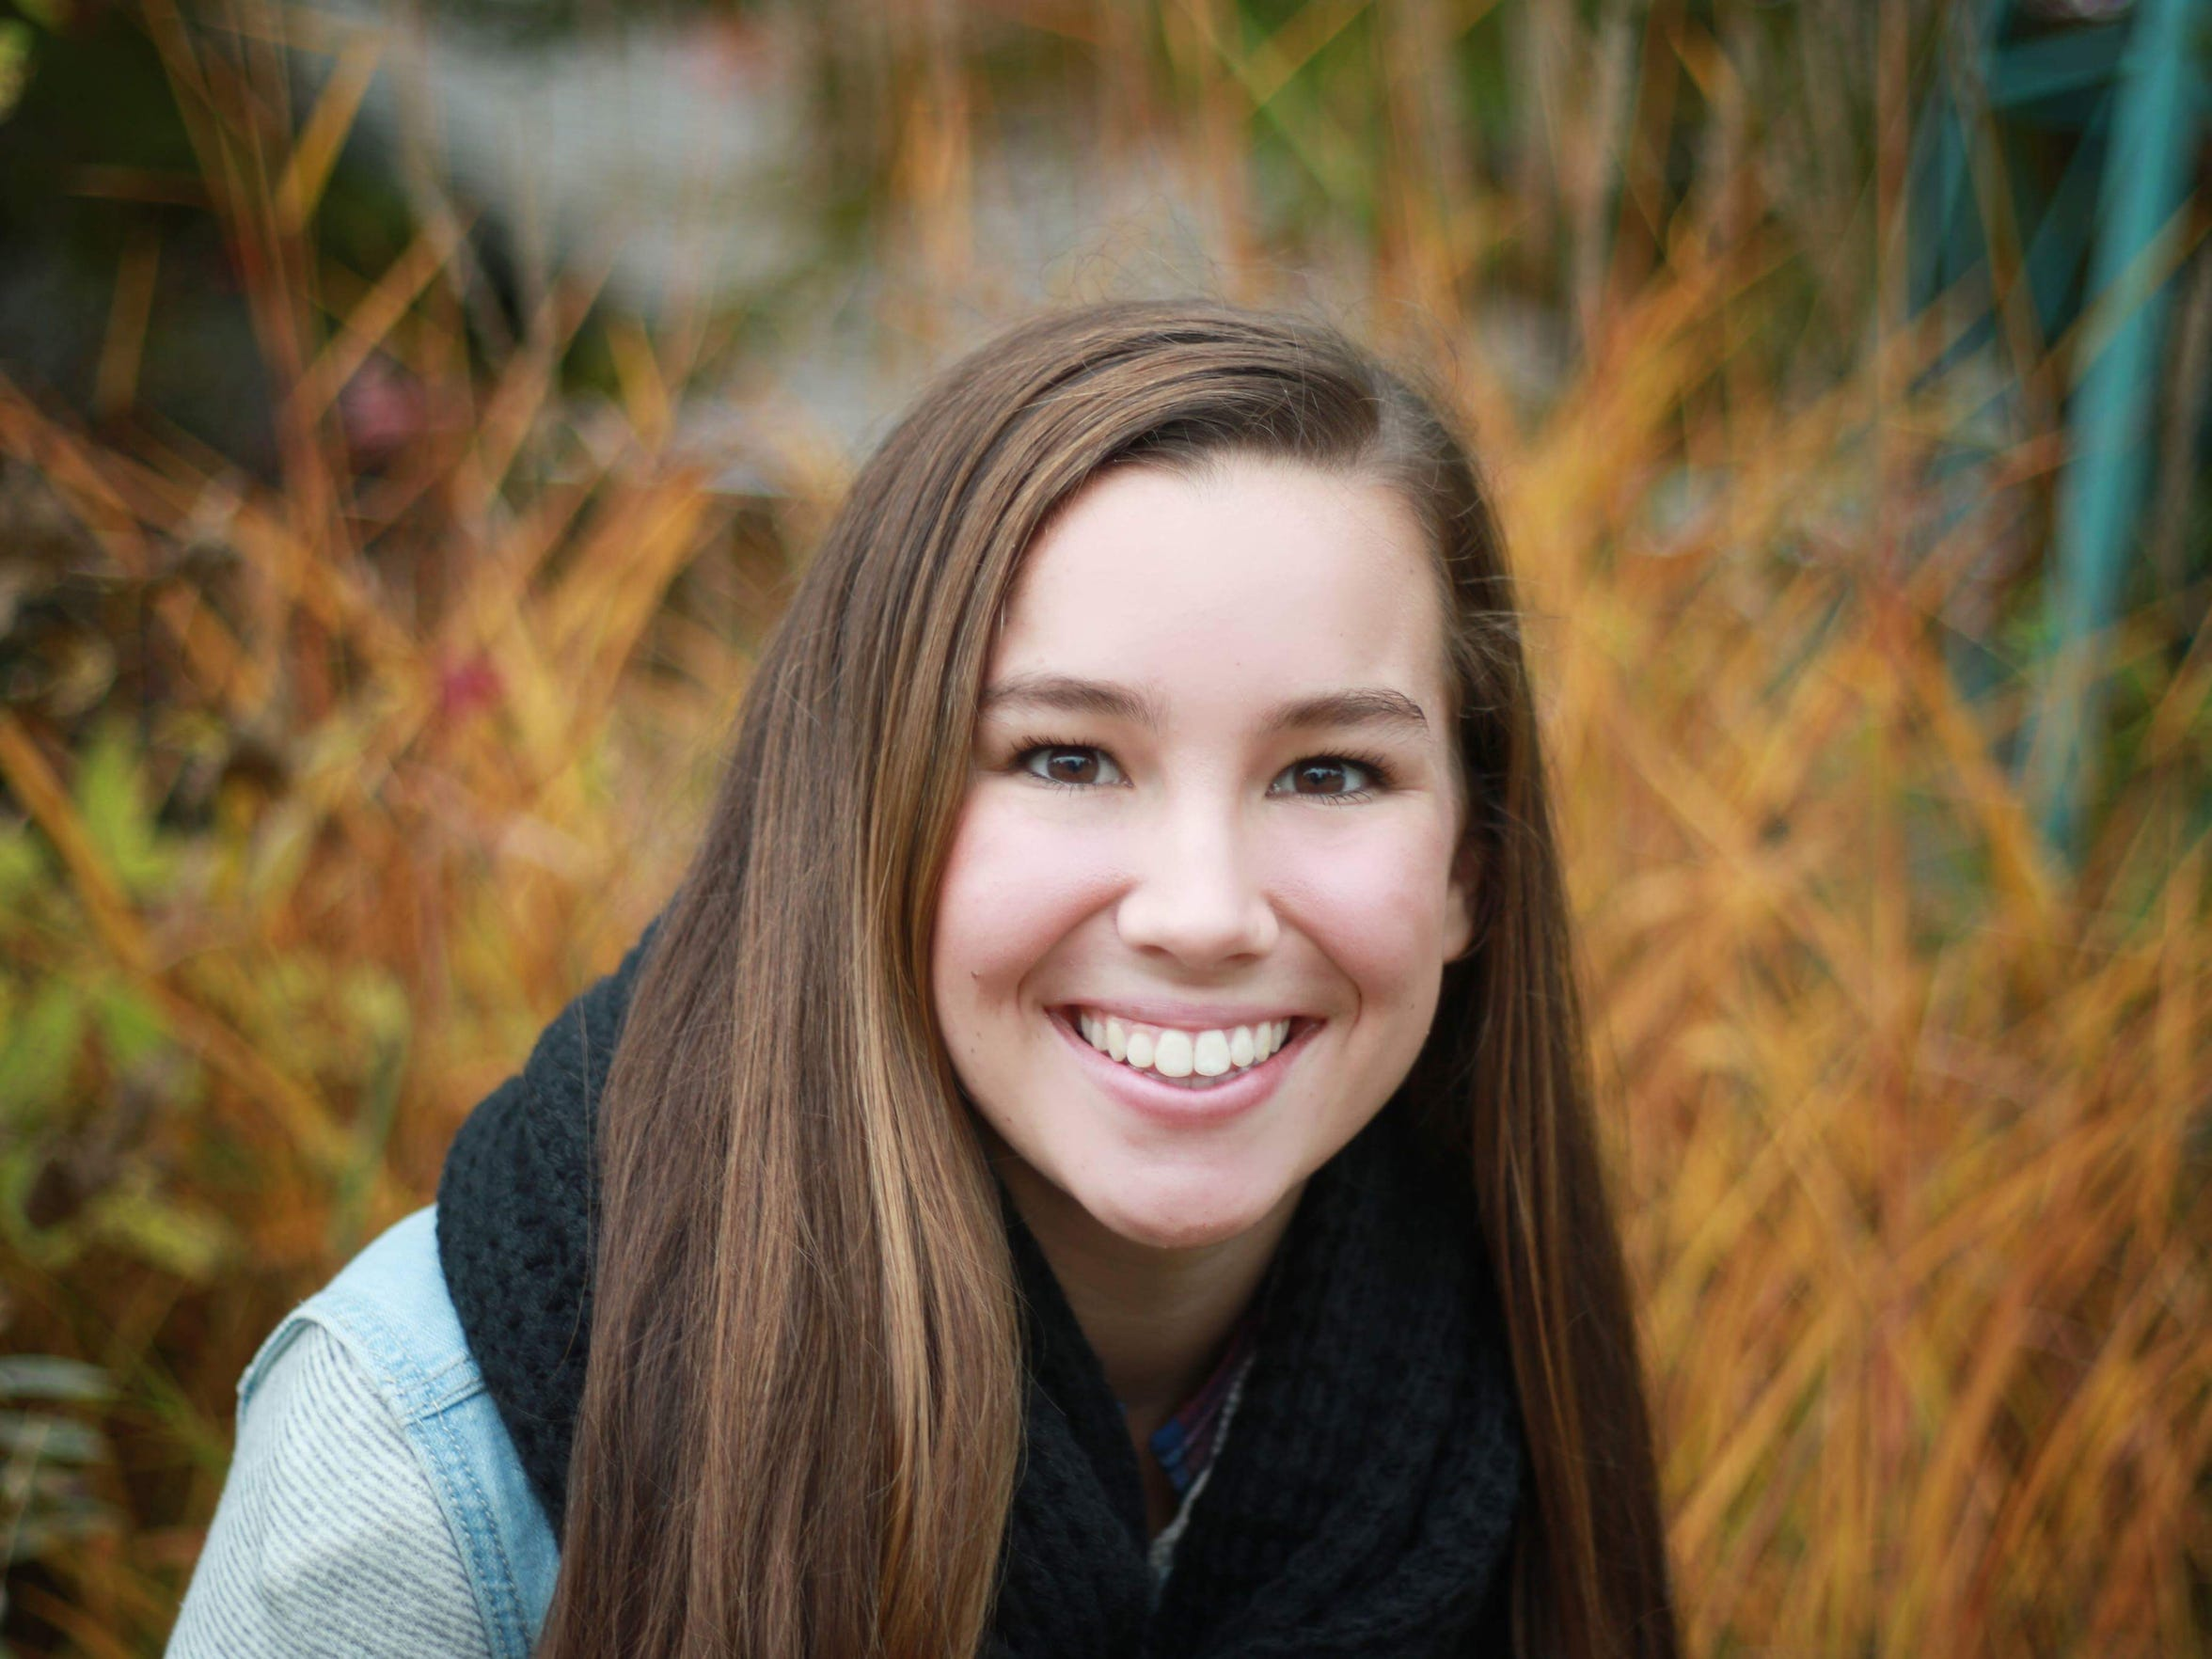 Mollie Tibbetts, 20, of Brooklyn, was last seen jogging on July 18, 2018 before her body was found in farm field one month later.